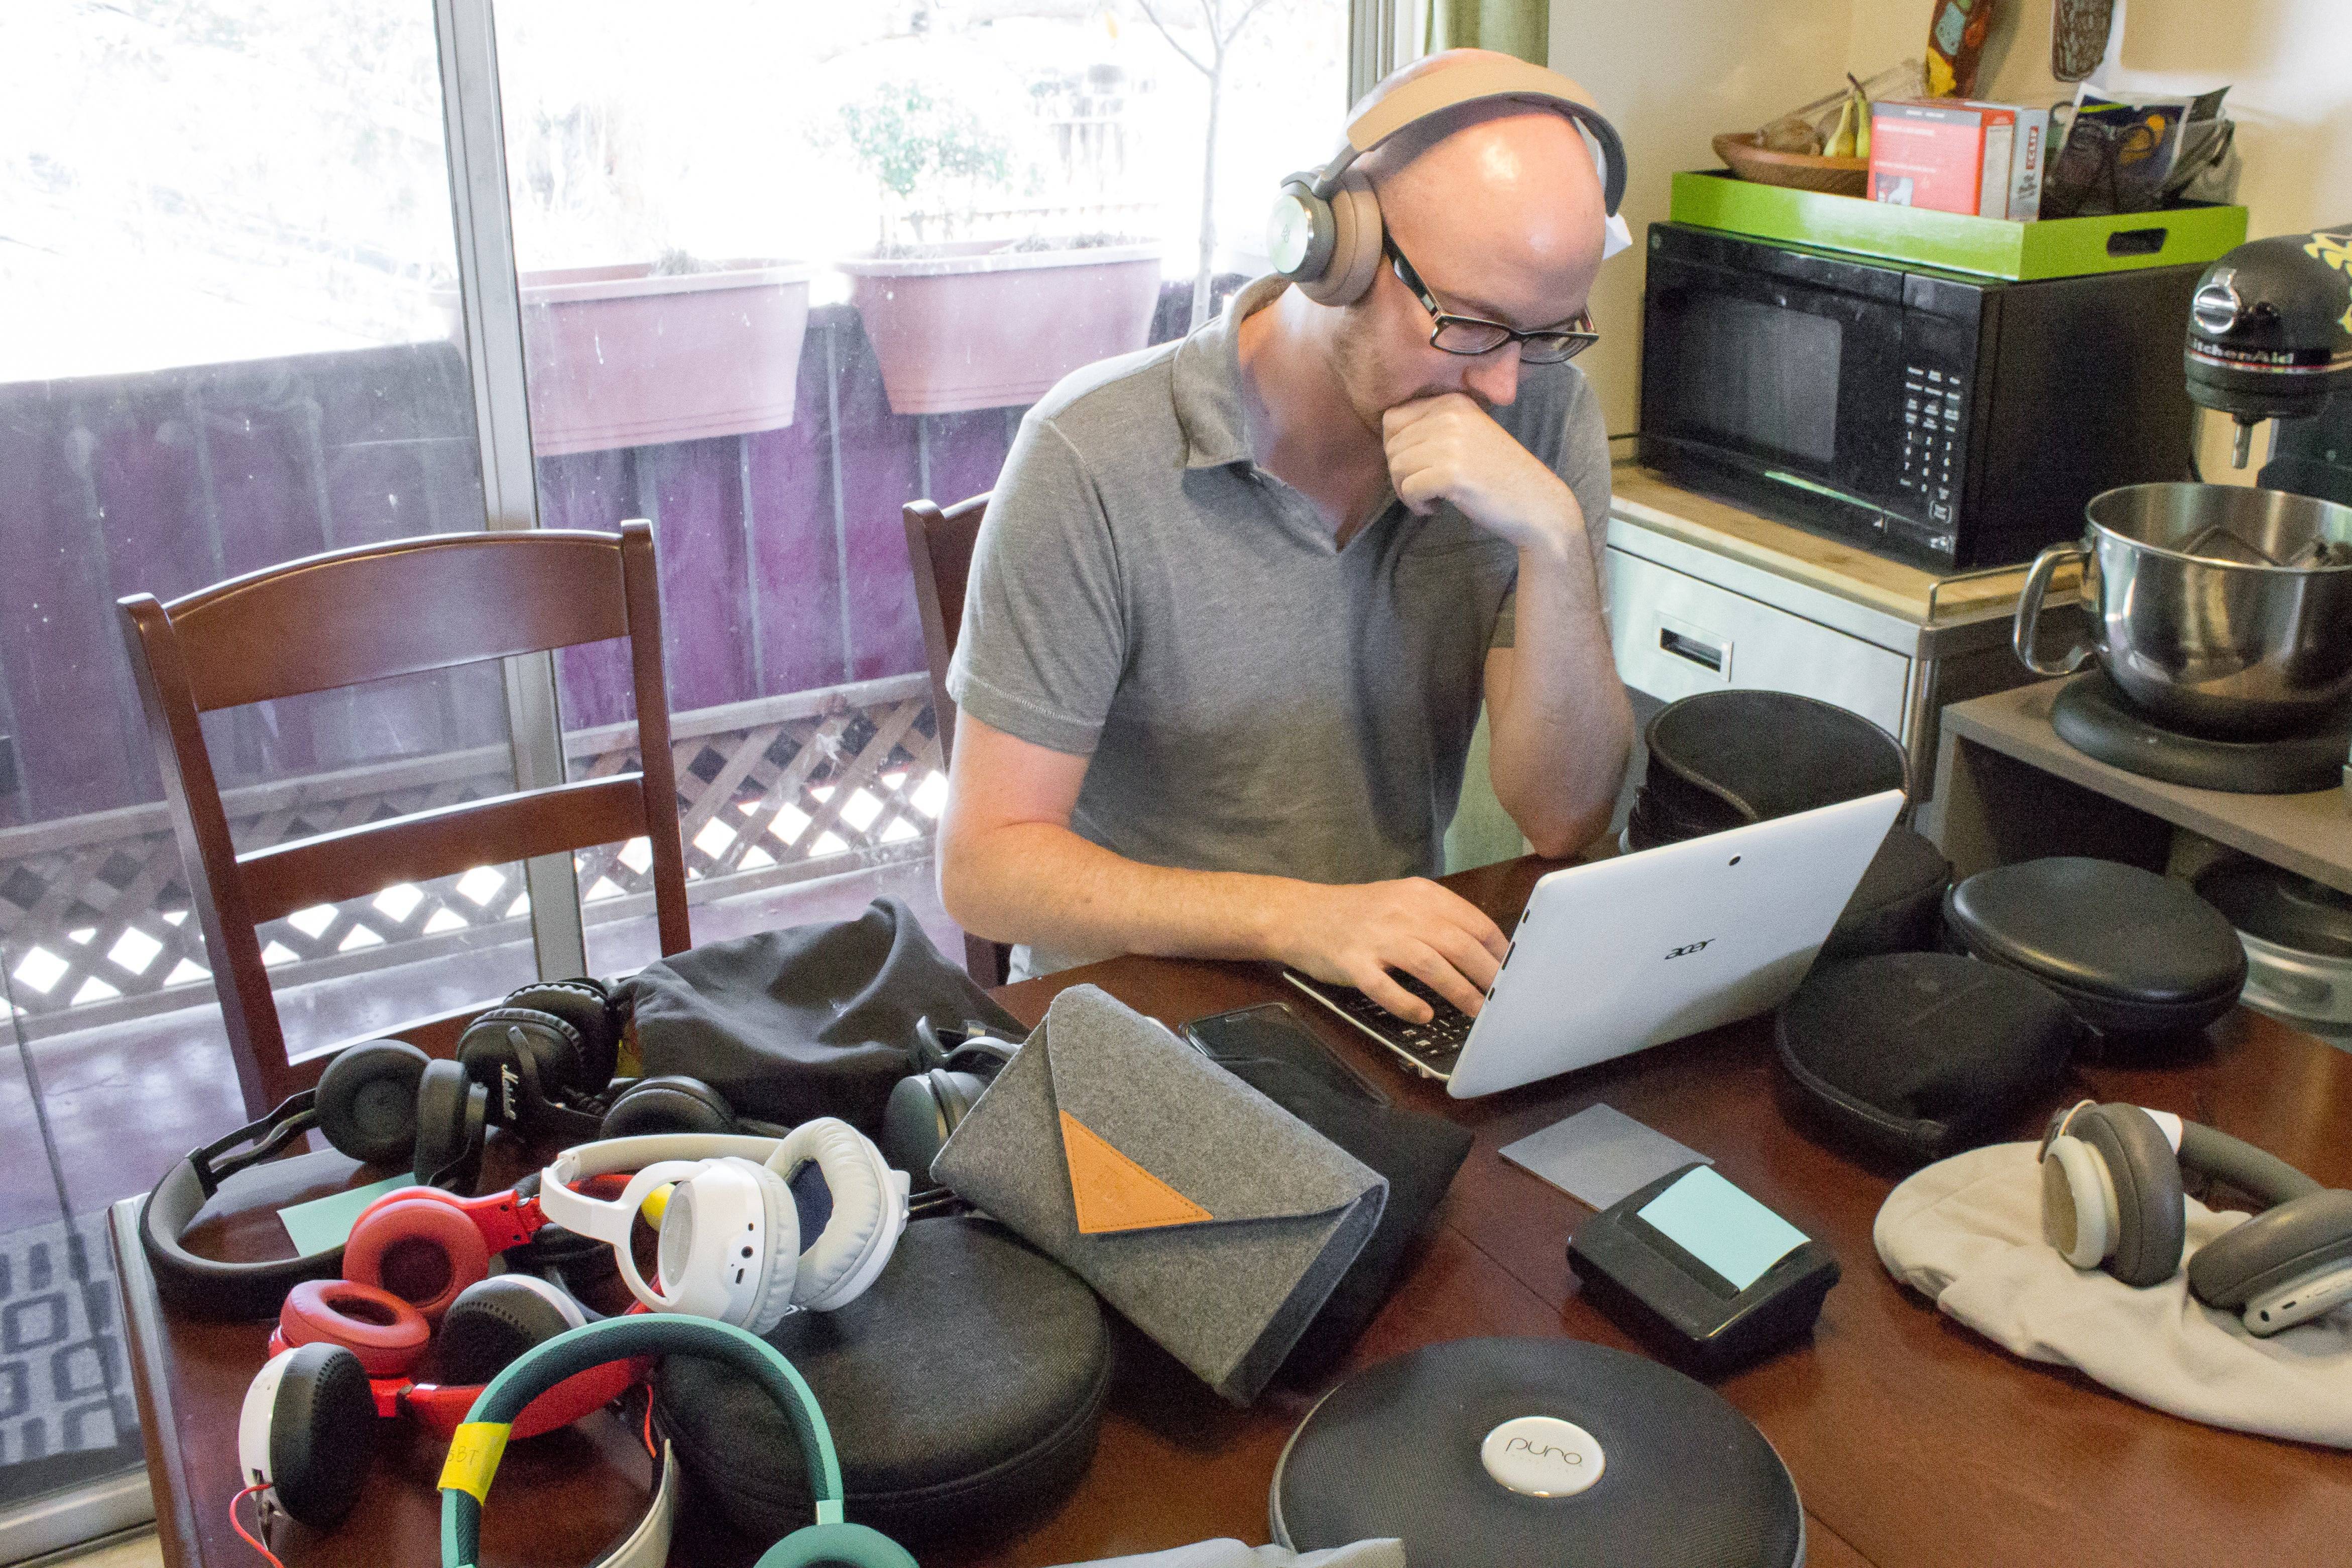 man working at his desk with a pile of headphones